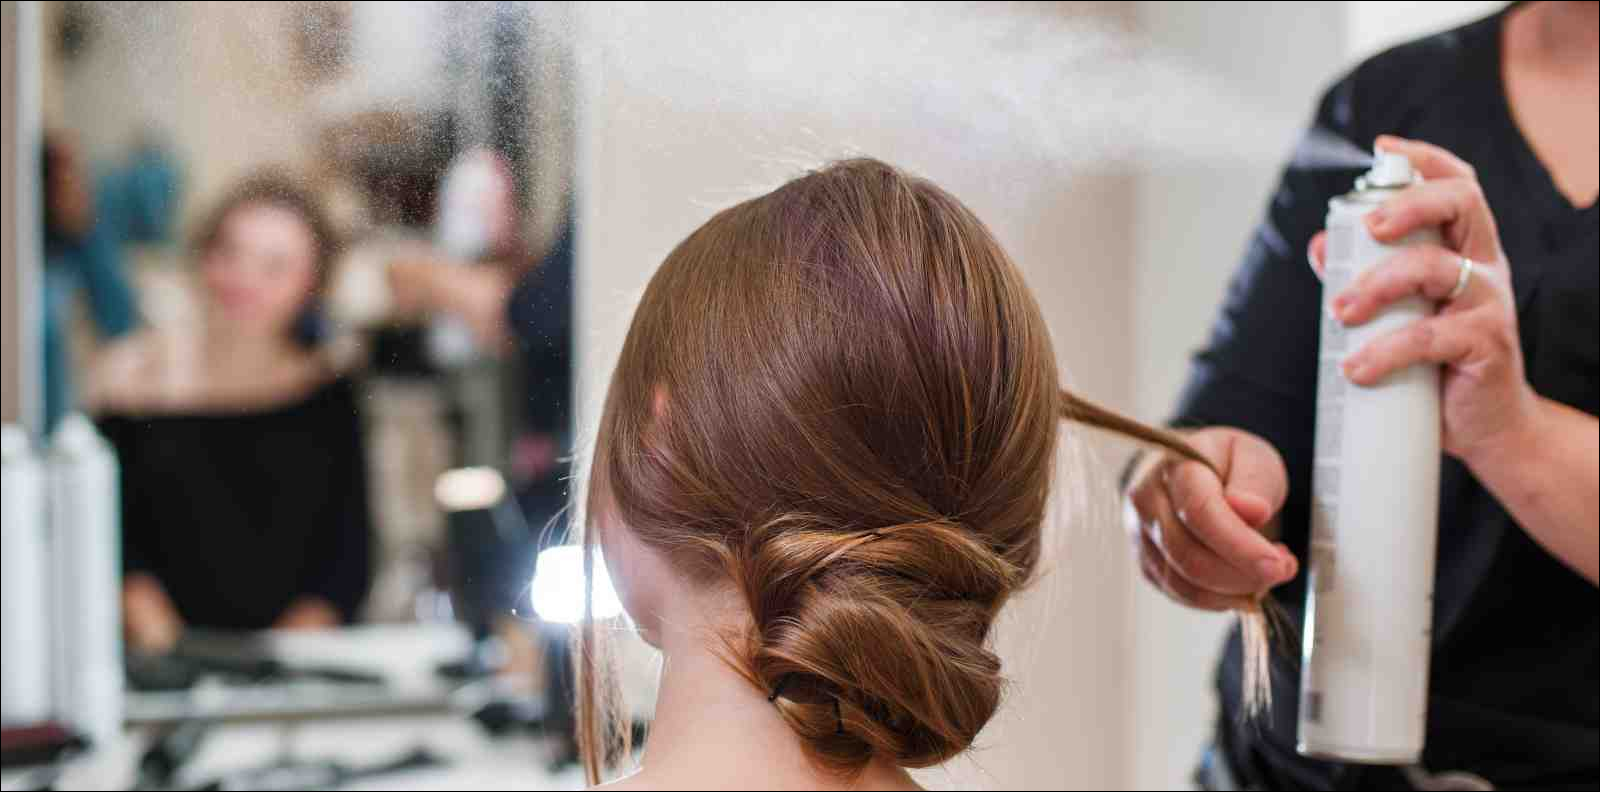 Hairdresser fixing woman's hair with hairspray